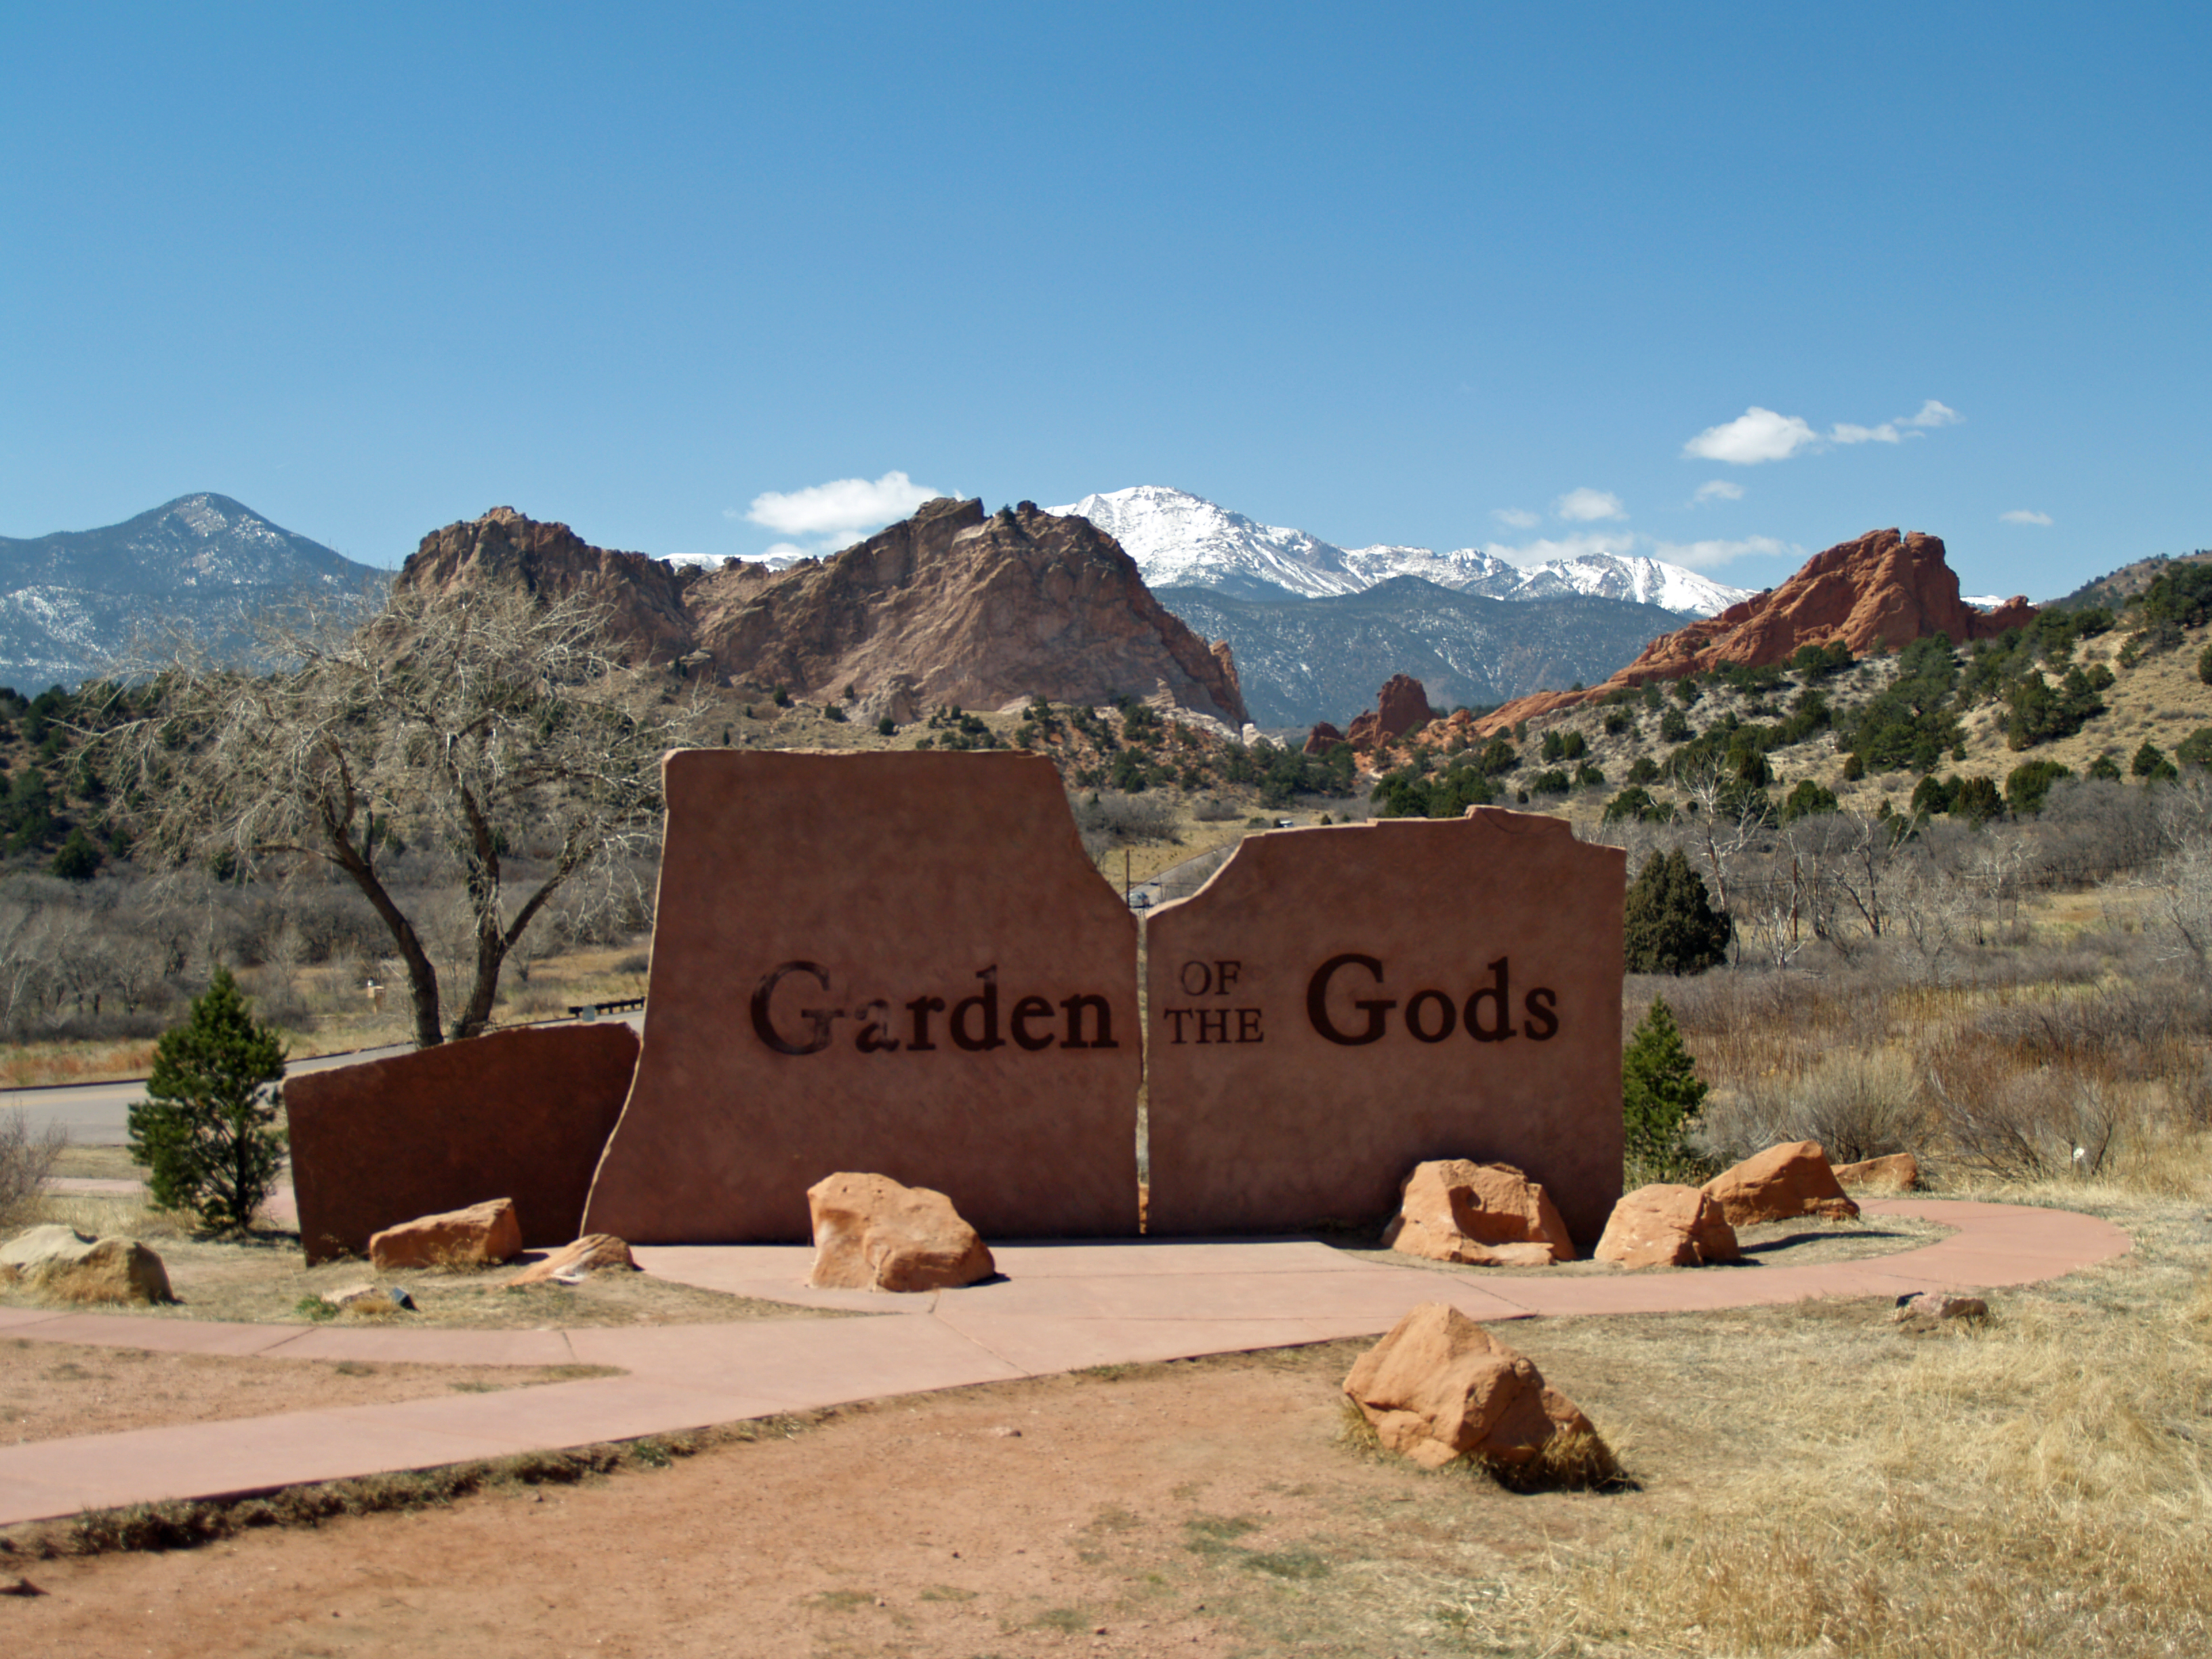 Garden of the Gods by David Shankbone.jpg